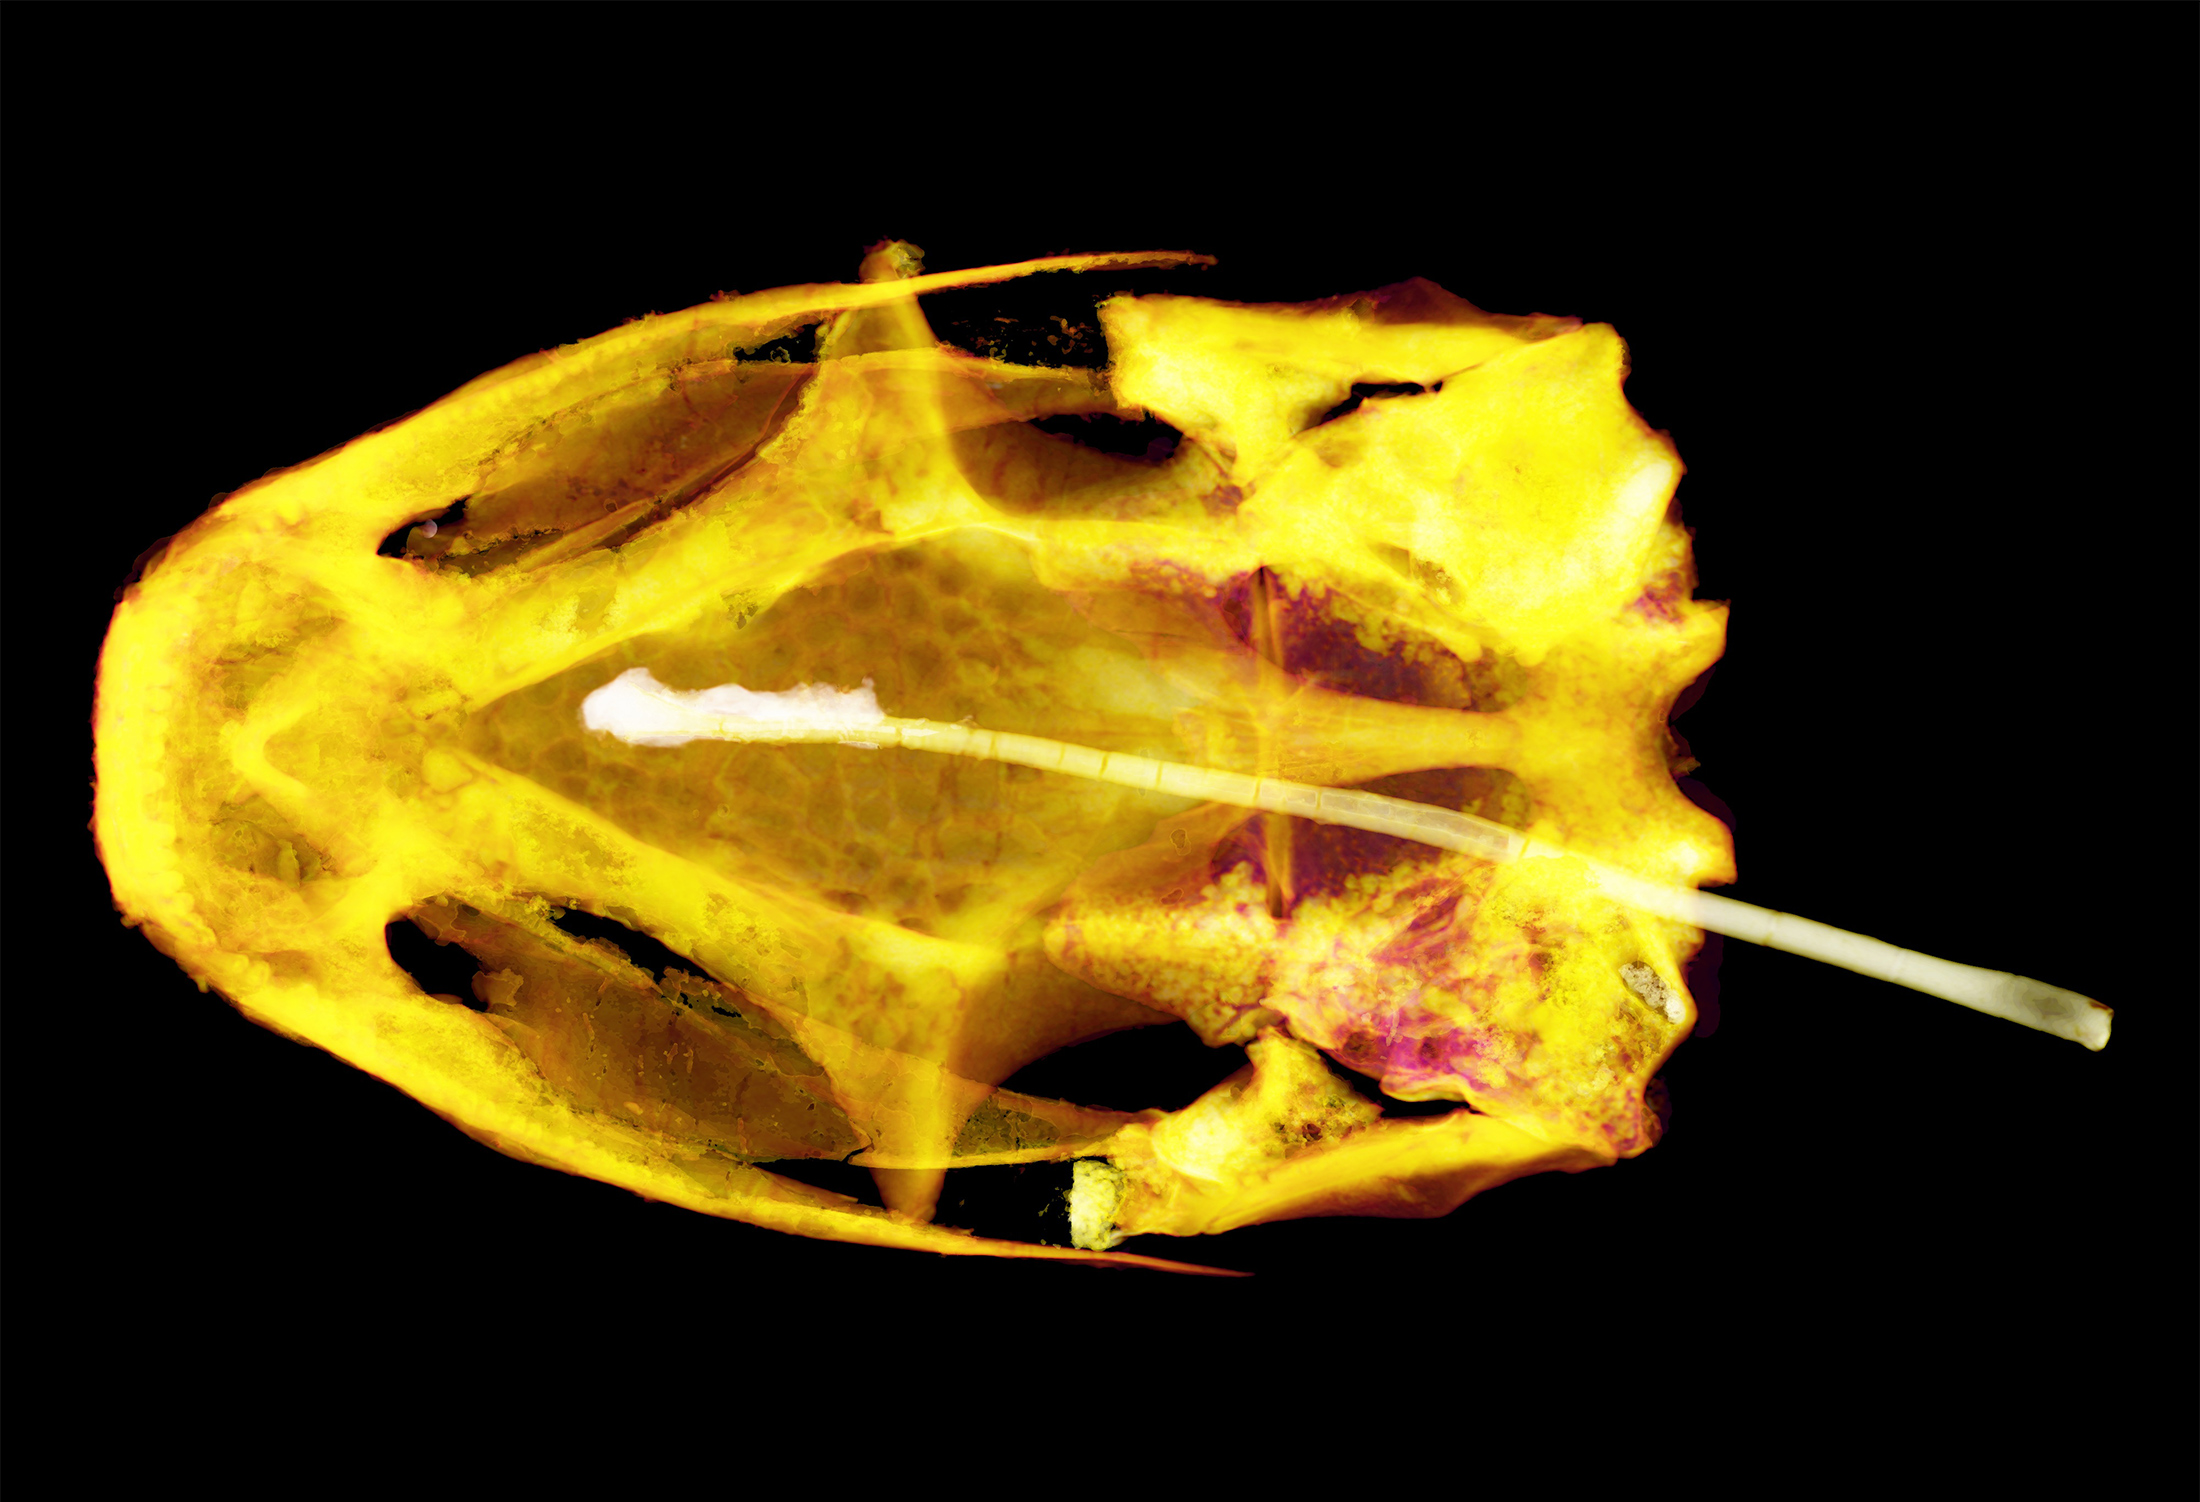 The fossil skull is seen from above, lighted in yellow